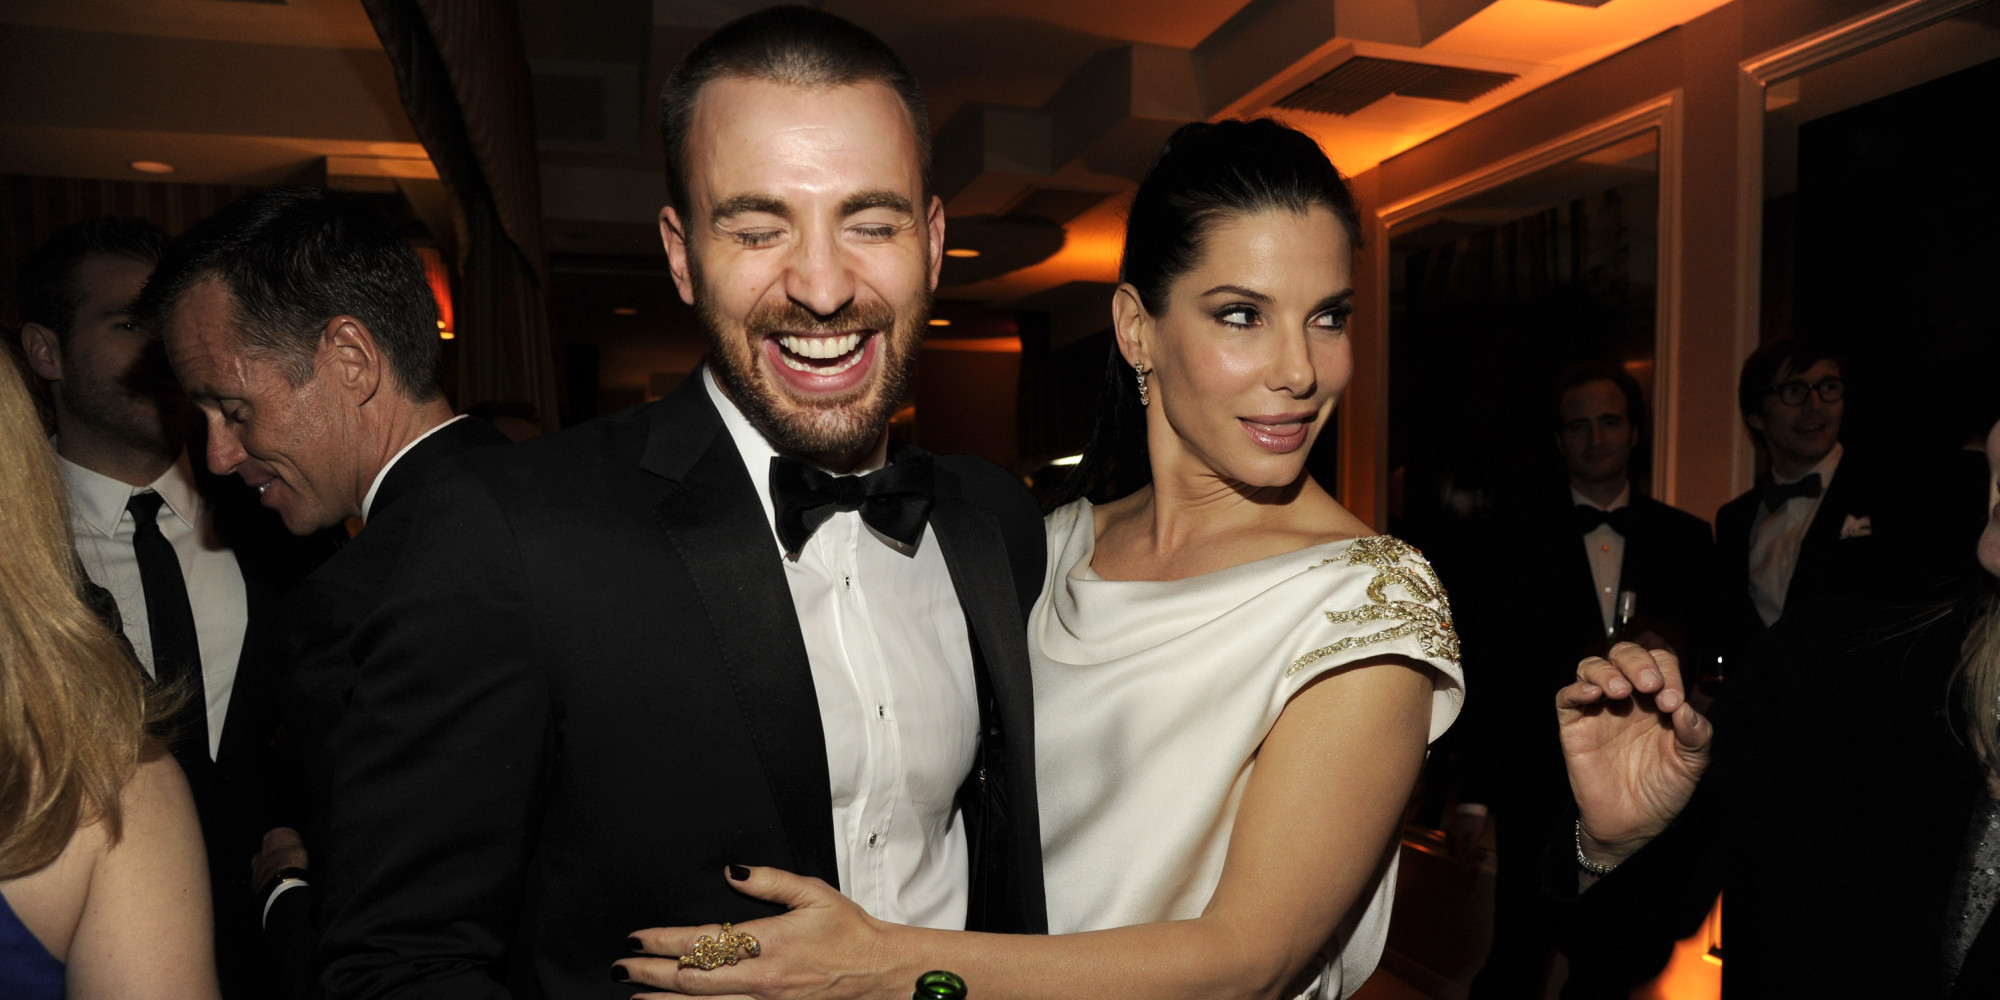 Is sandra bullock dating chris evans — 2